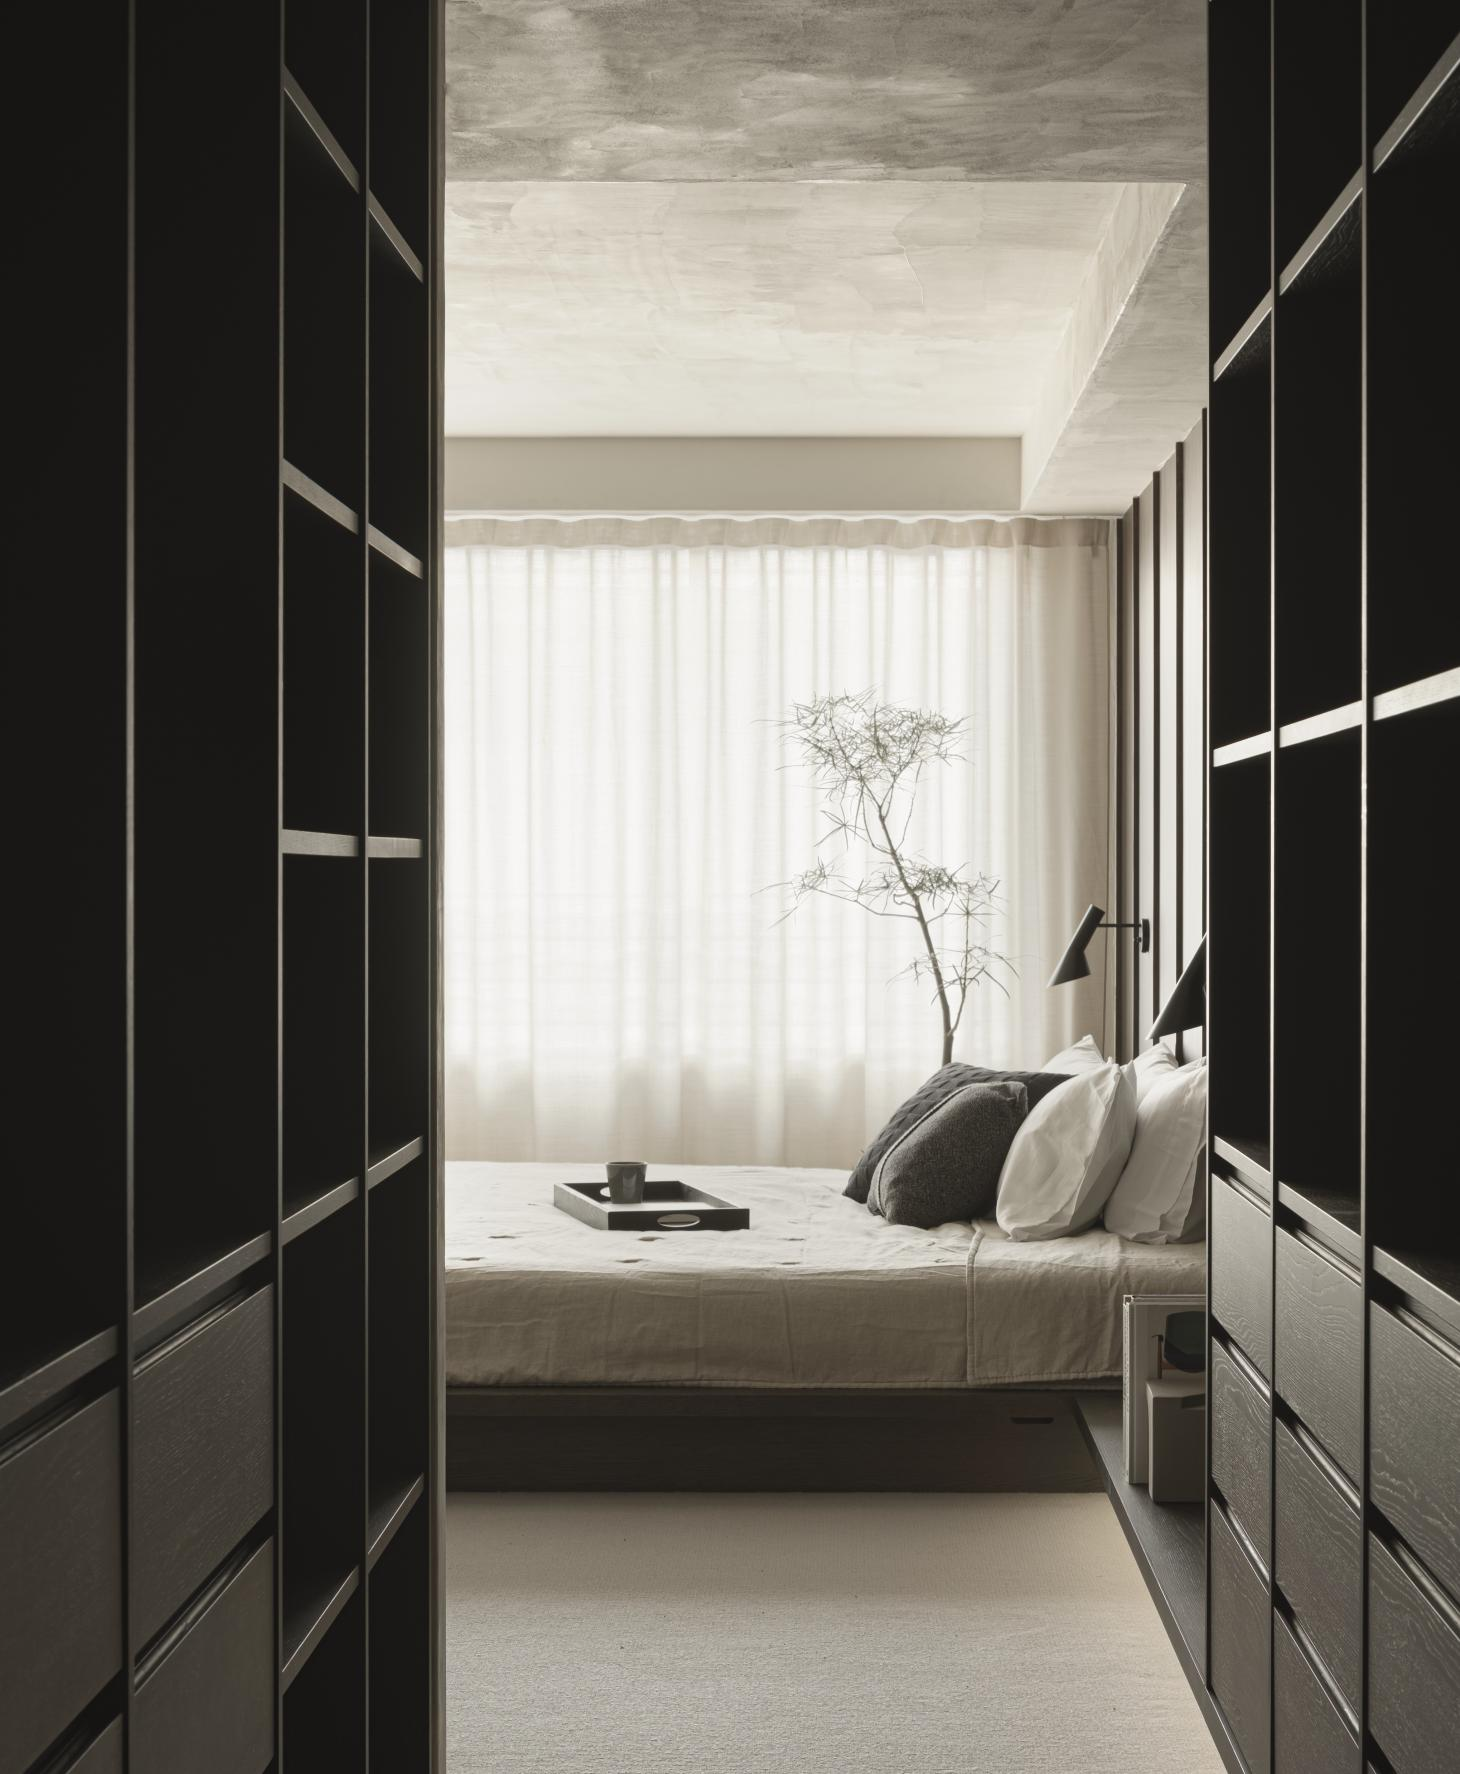 A view of the bedroom from the walk in wardrobe clad in dark wood